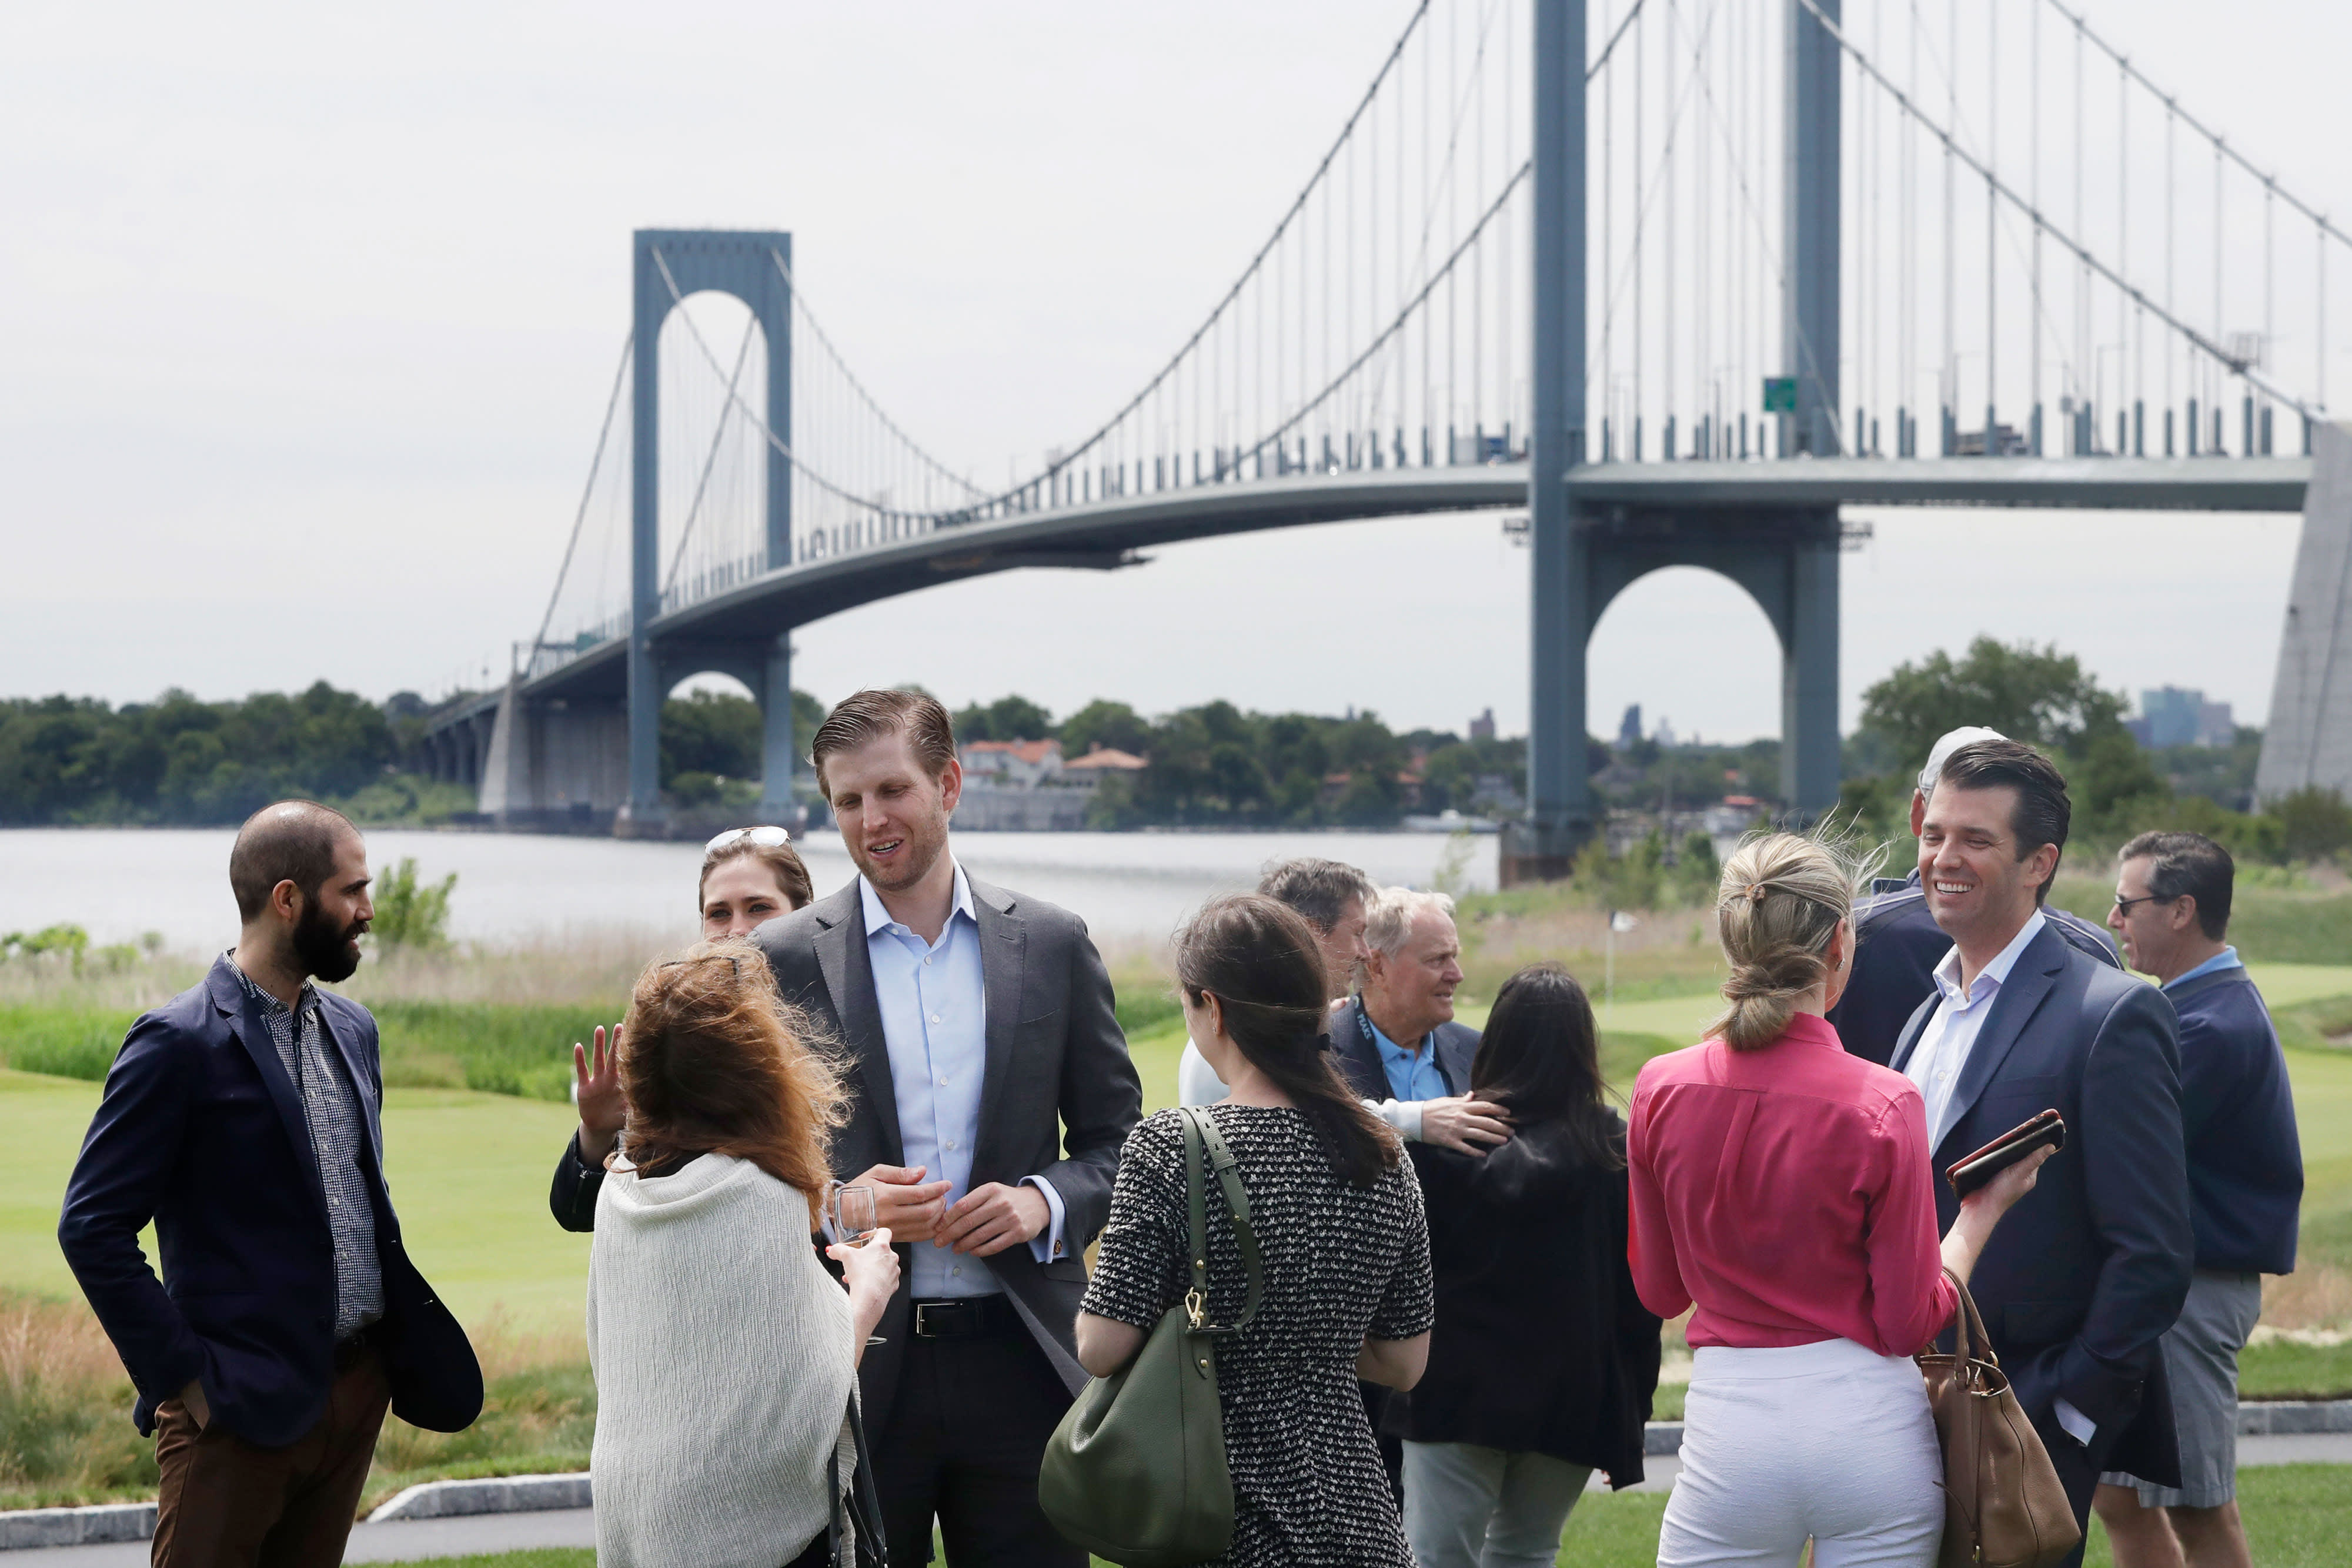 Trump's Bronx golf course lost $122,000 last year and blamed New York City